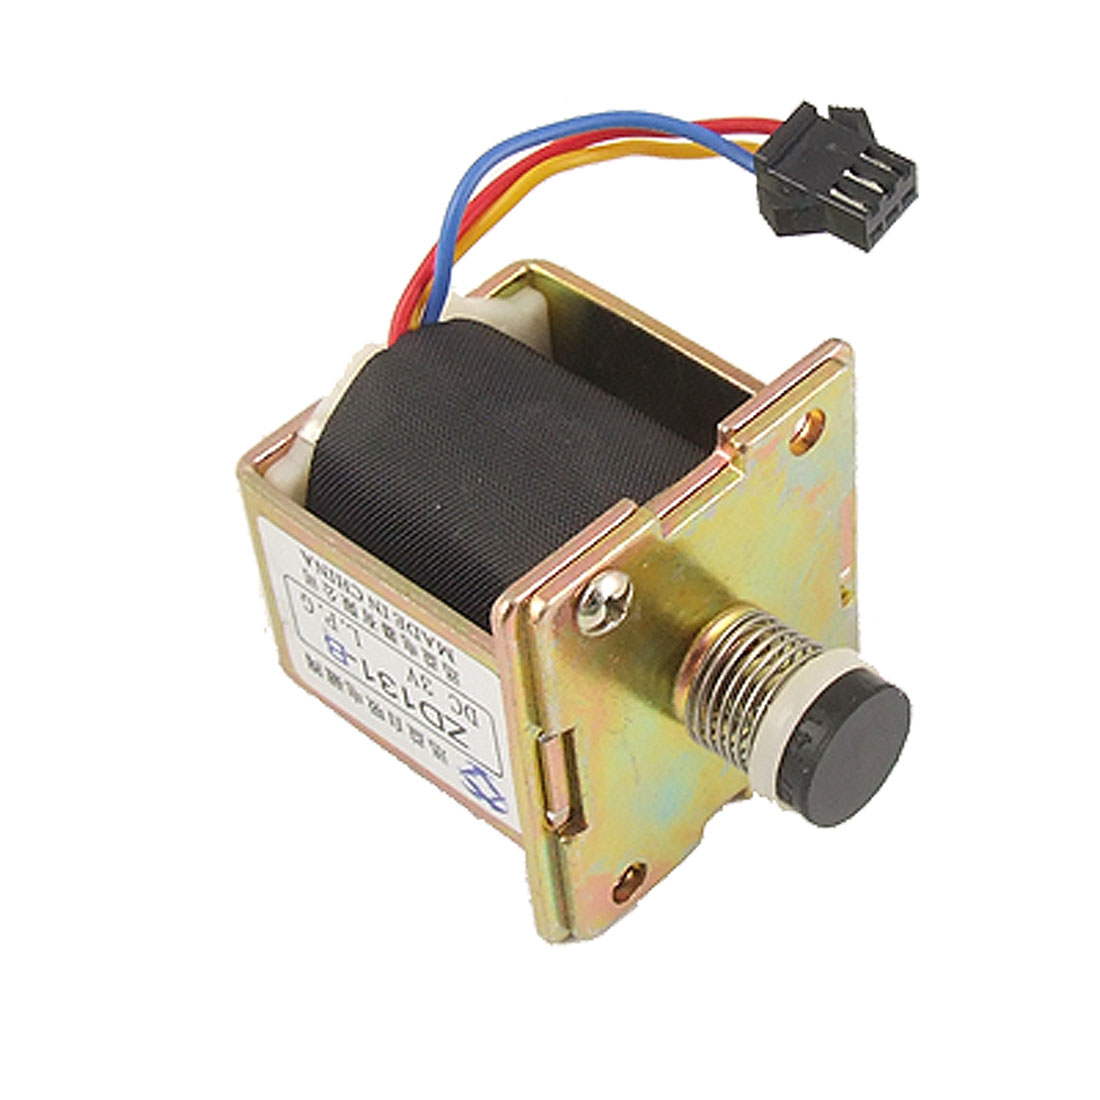 Water Heater Self Absorption Solenoid Valve DC 3V